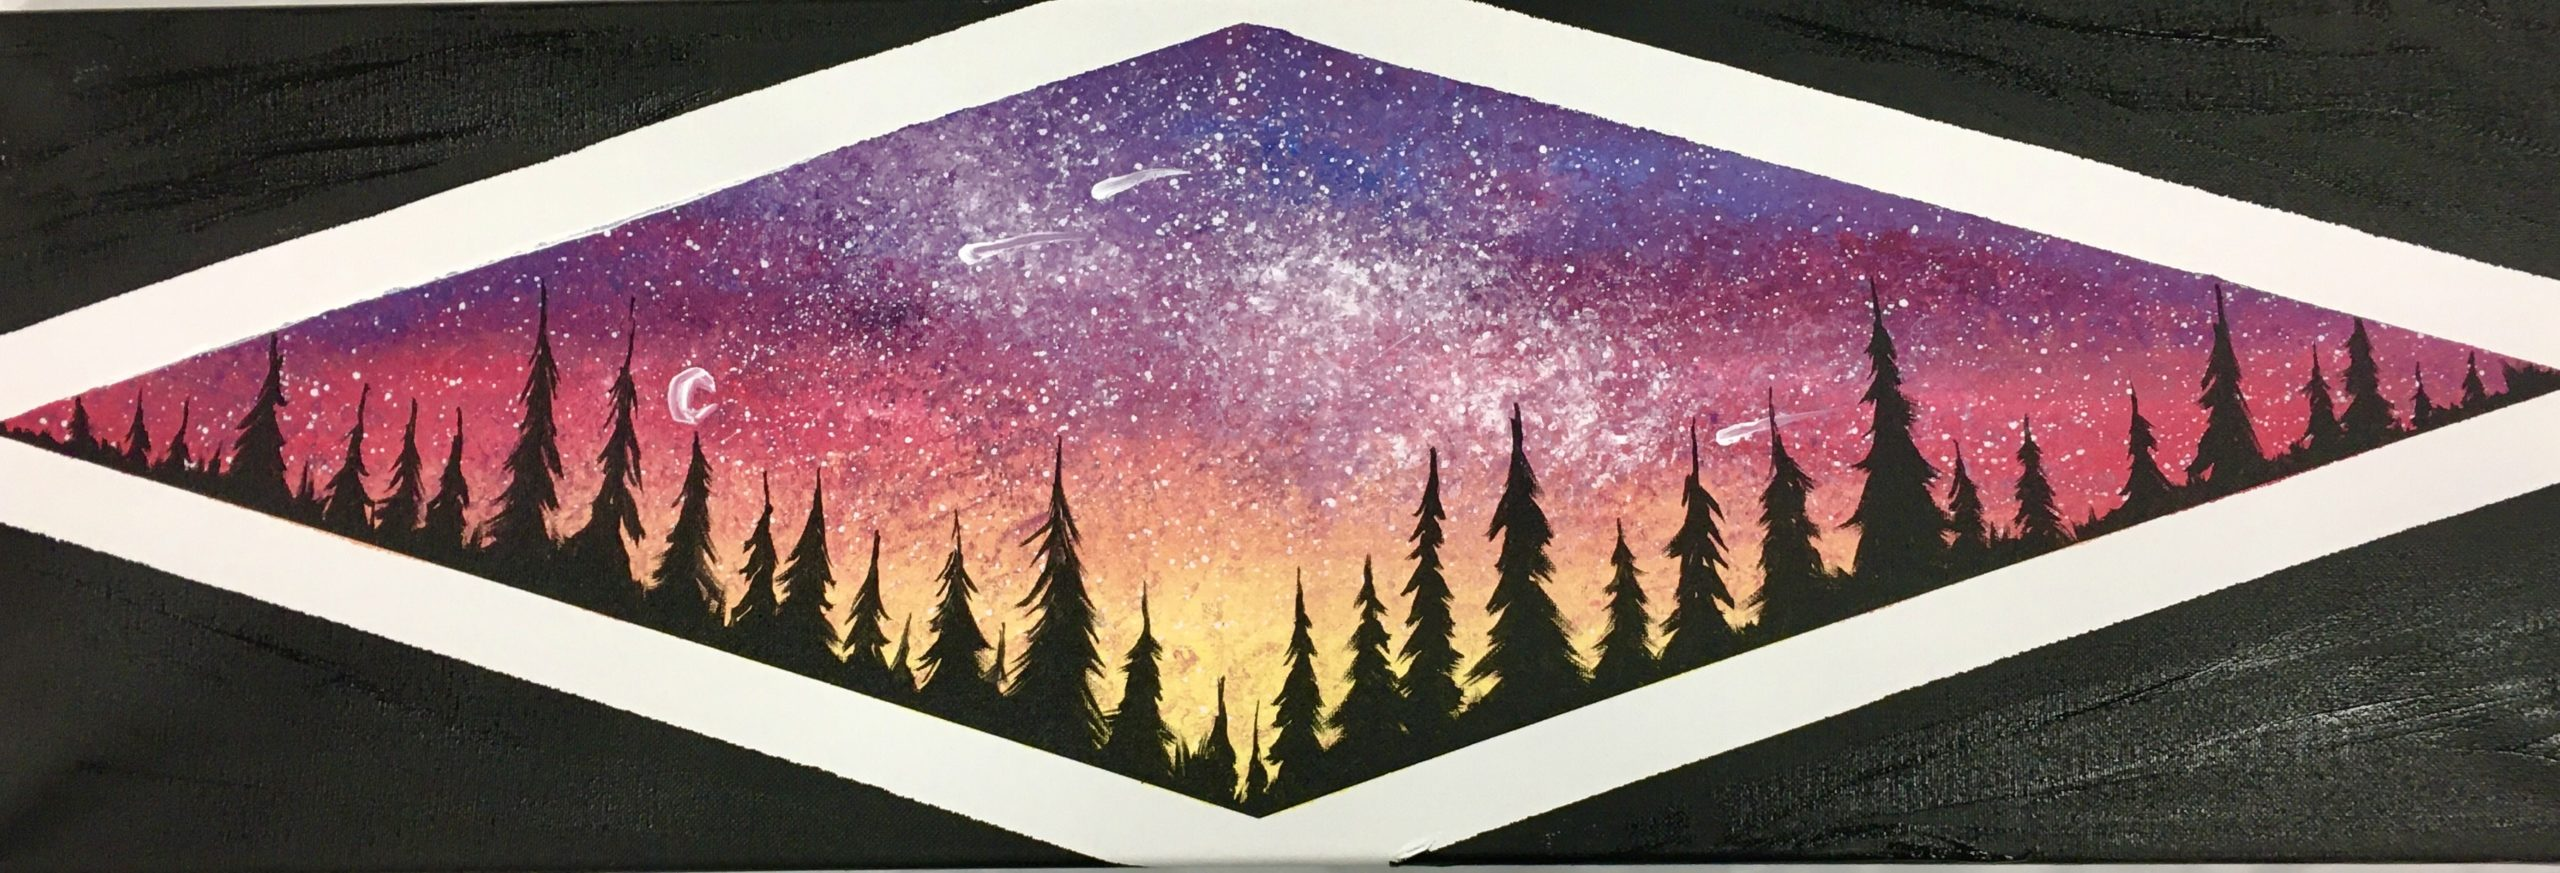 Star Gaze Painting Kit